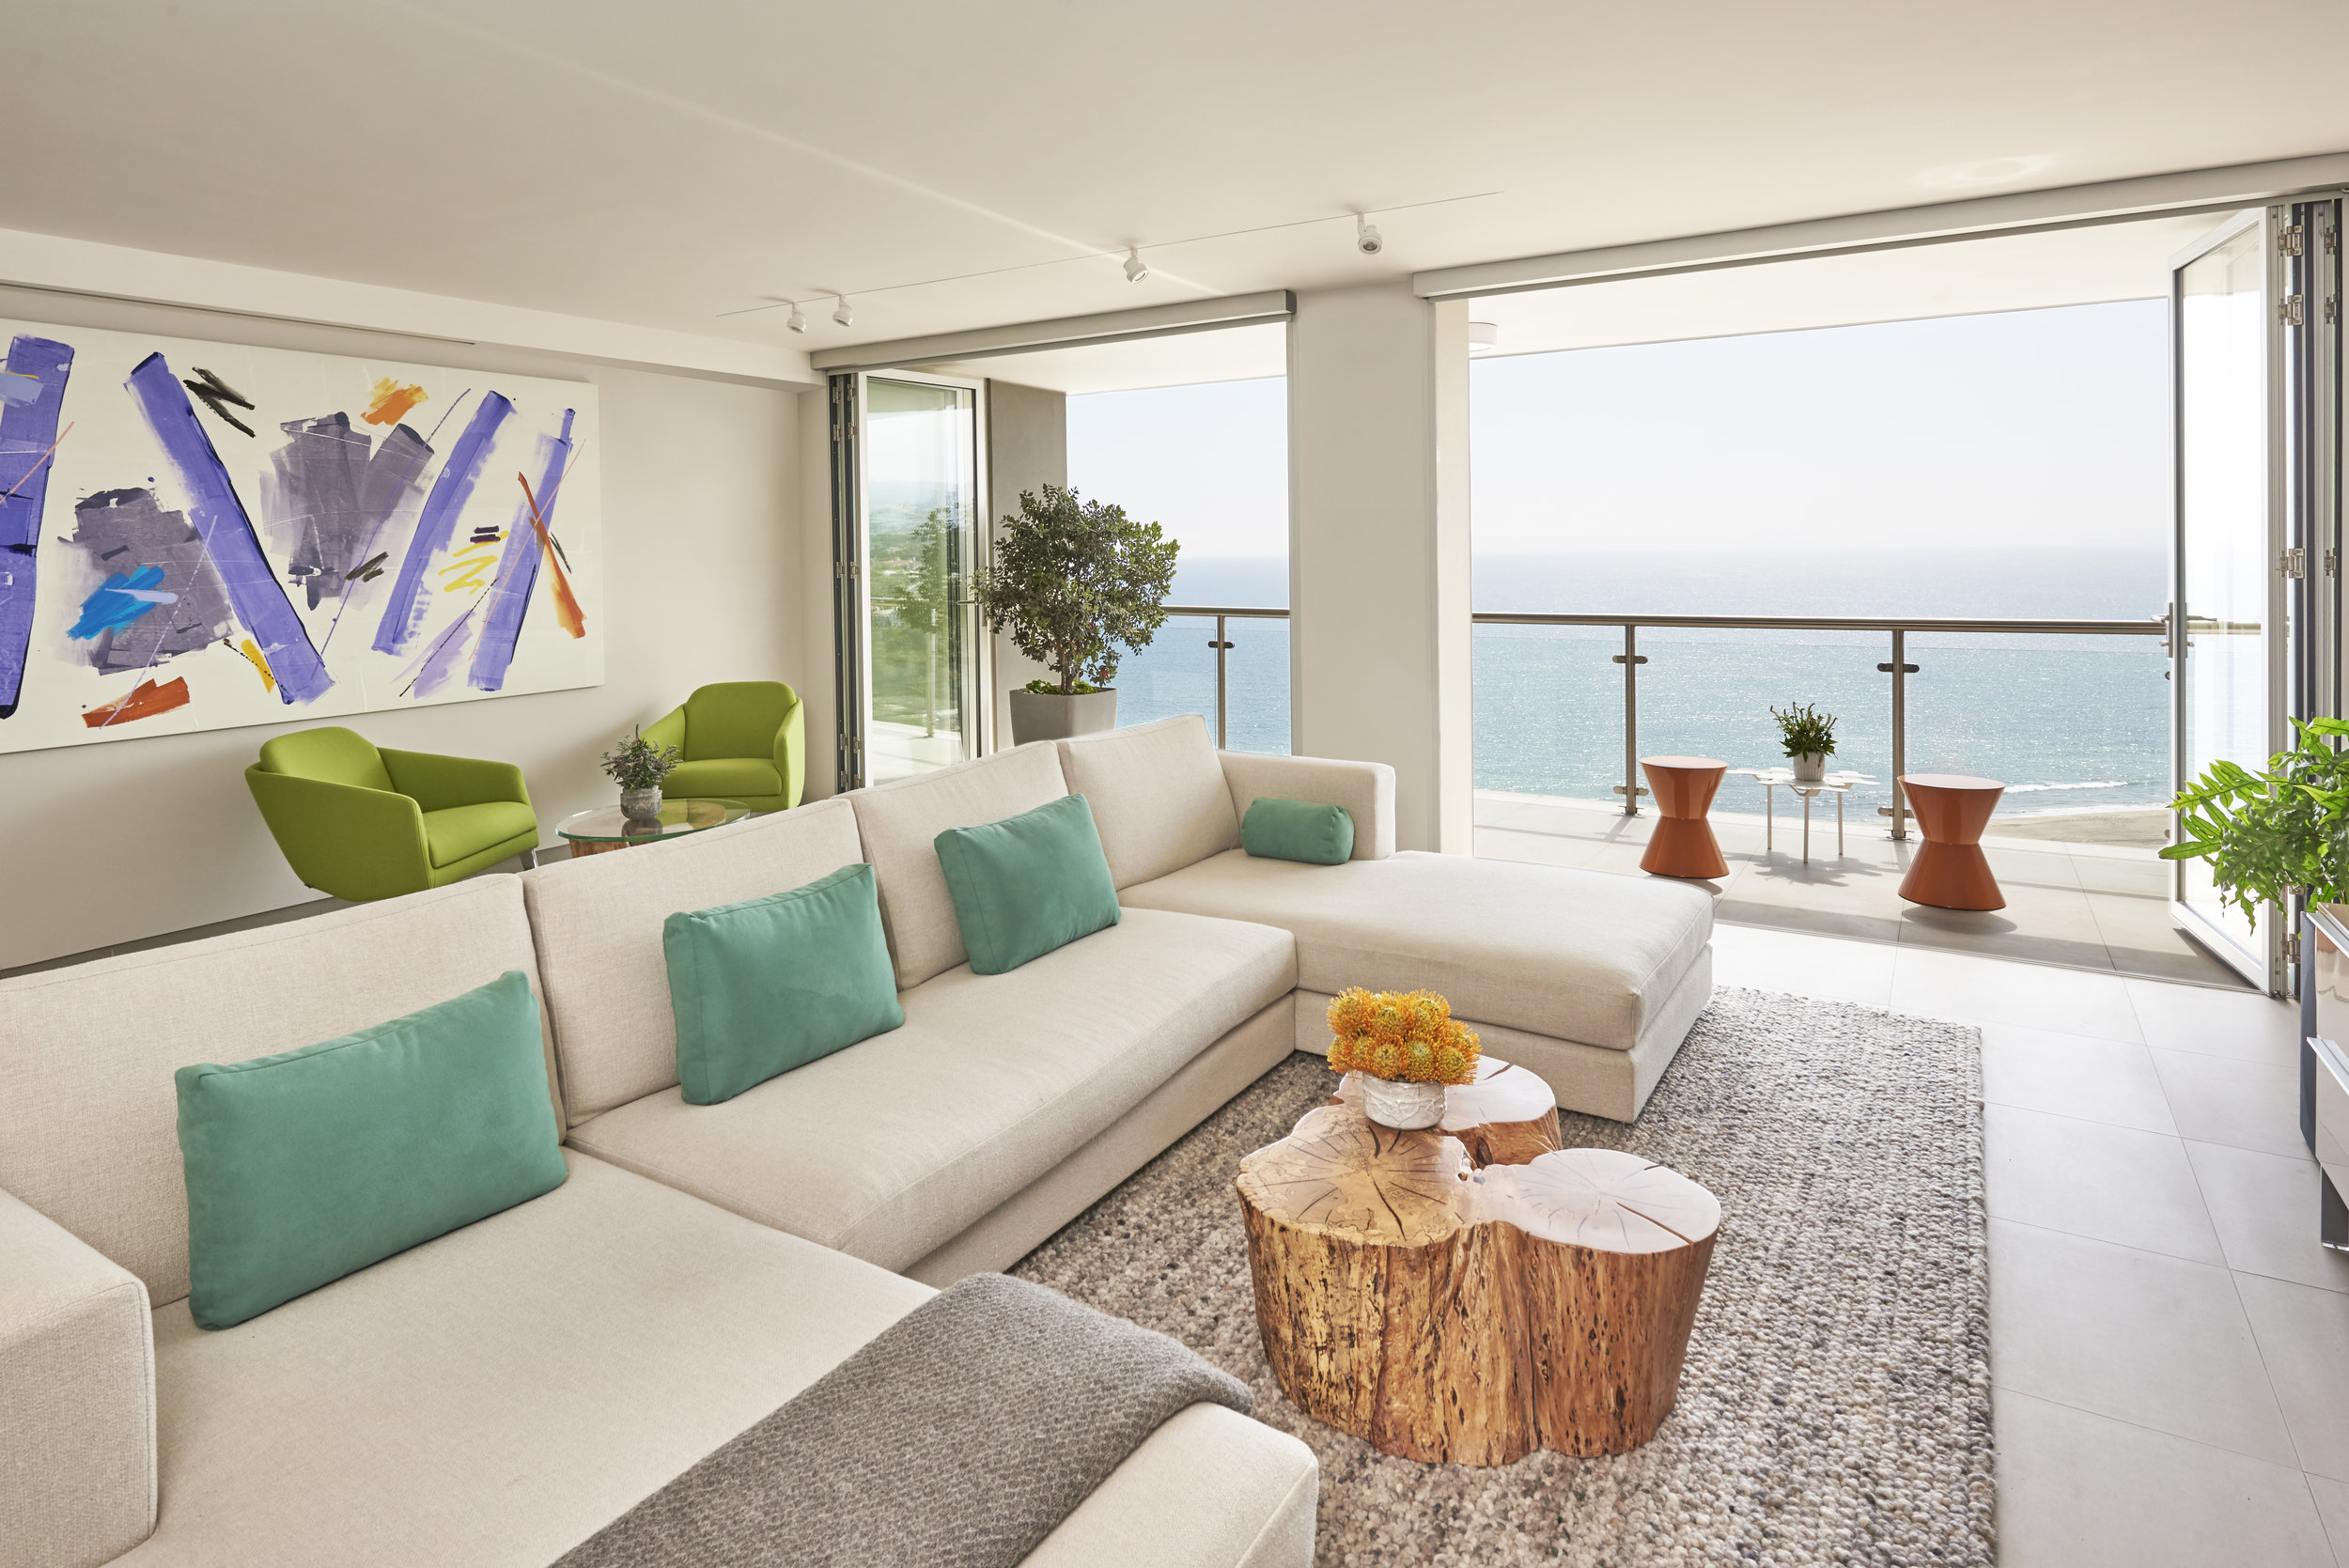 Fresh and fun colors come to life in the  open air media room . The locally made sectional sofa was designed to fit the homeowner's specific desires: all natural & non-toxic materials, handmade in California. Photo by Steven Dewall.